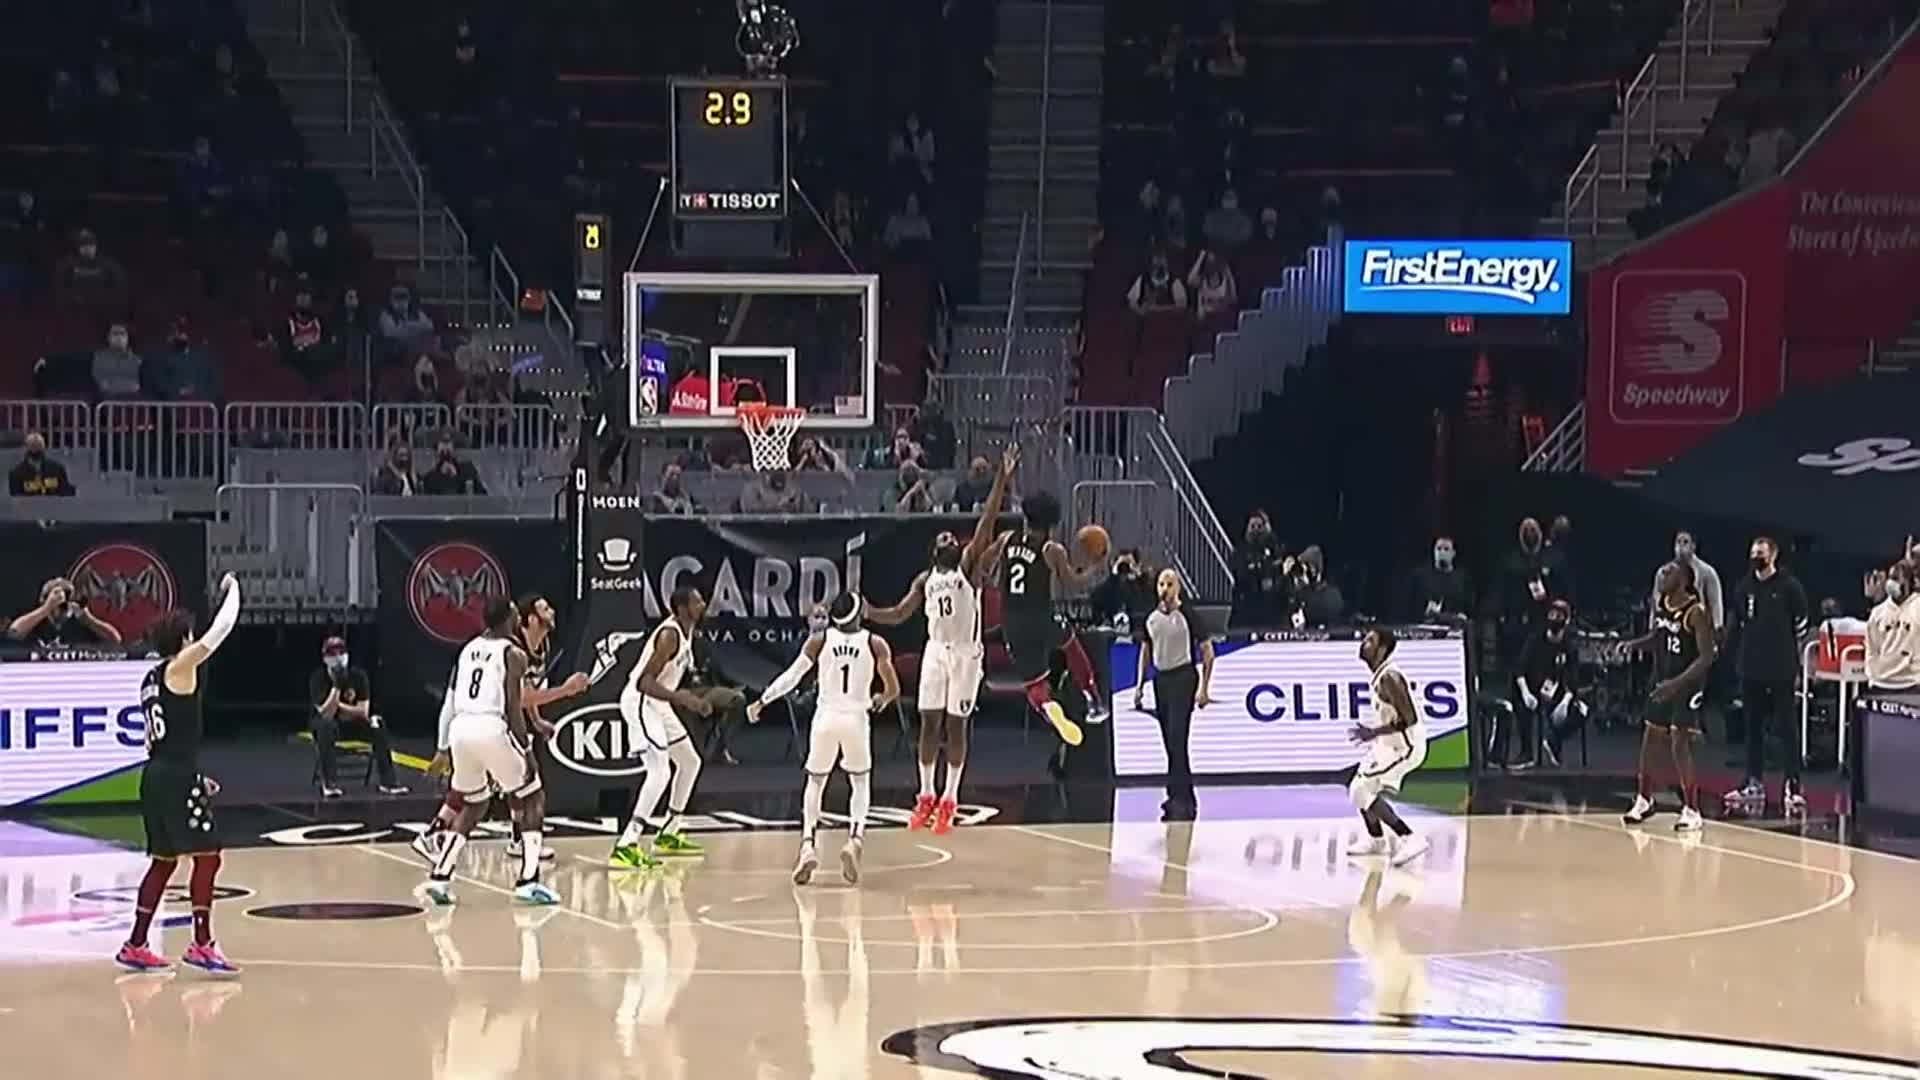 Sexton's Acrobatic Shot in the Paint